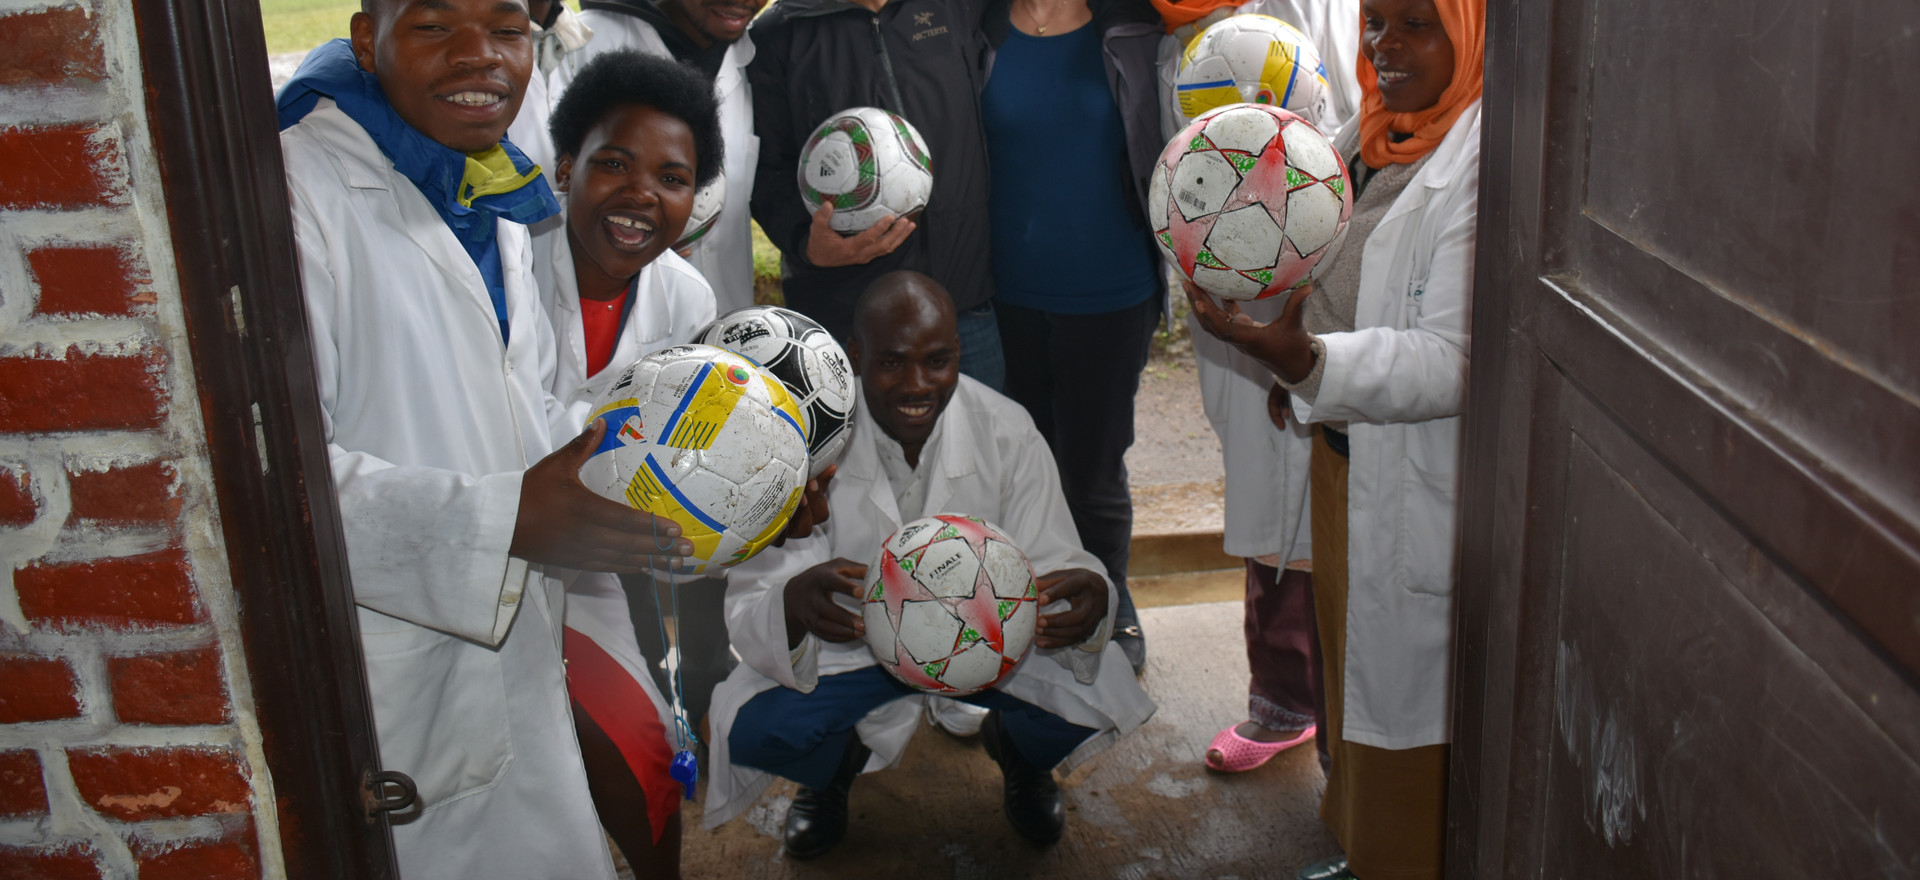 Rwanda - David Kempler/Candyce Stapen and Teachers delivering Soccer Balls